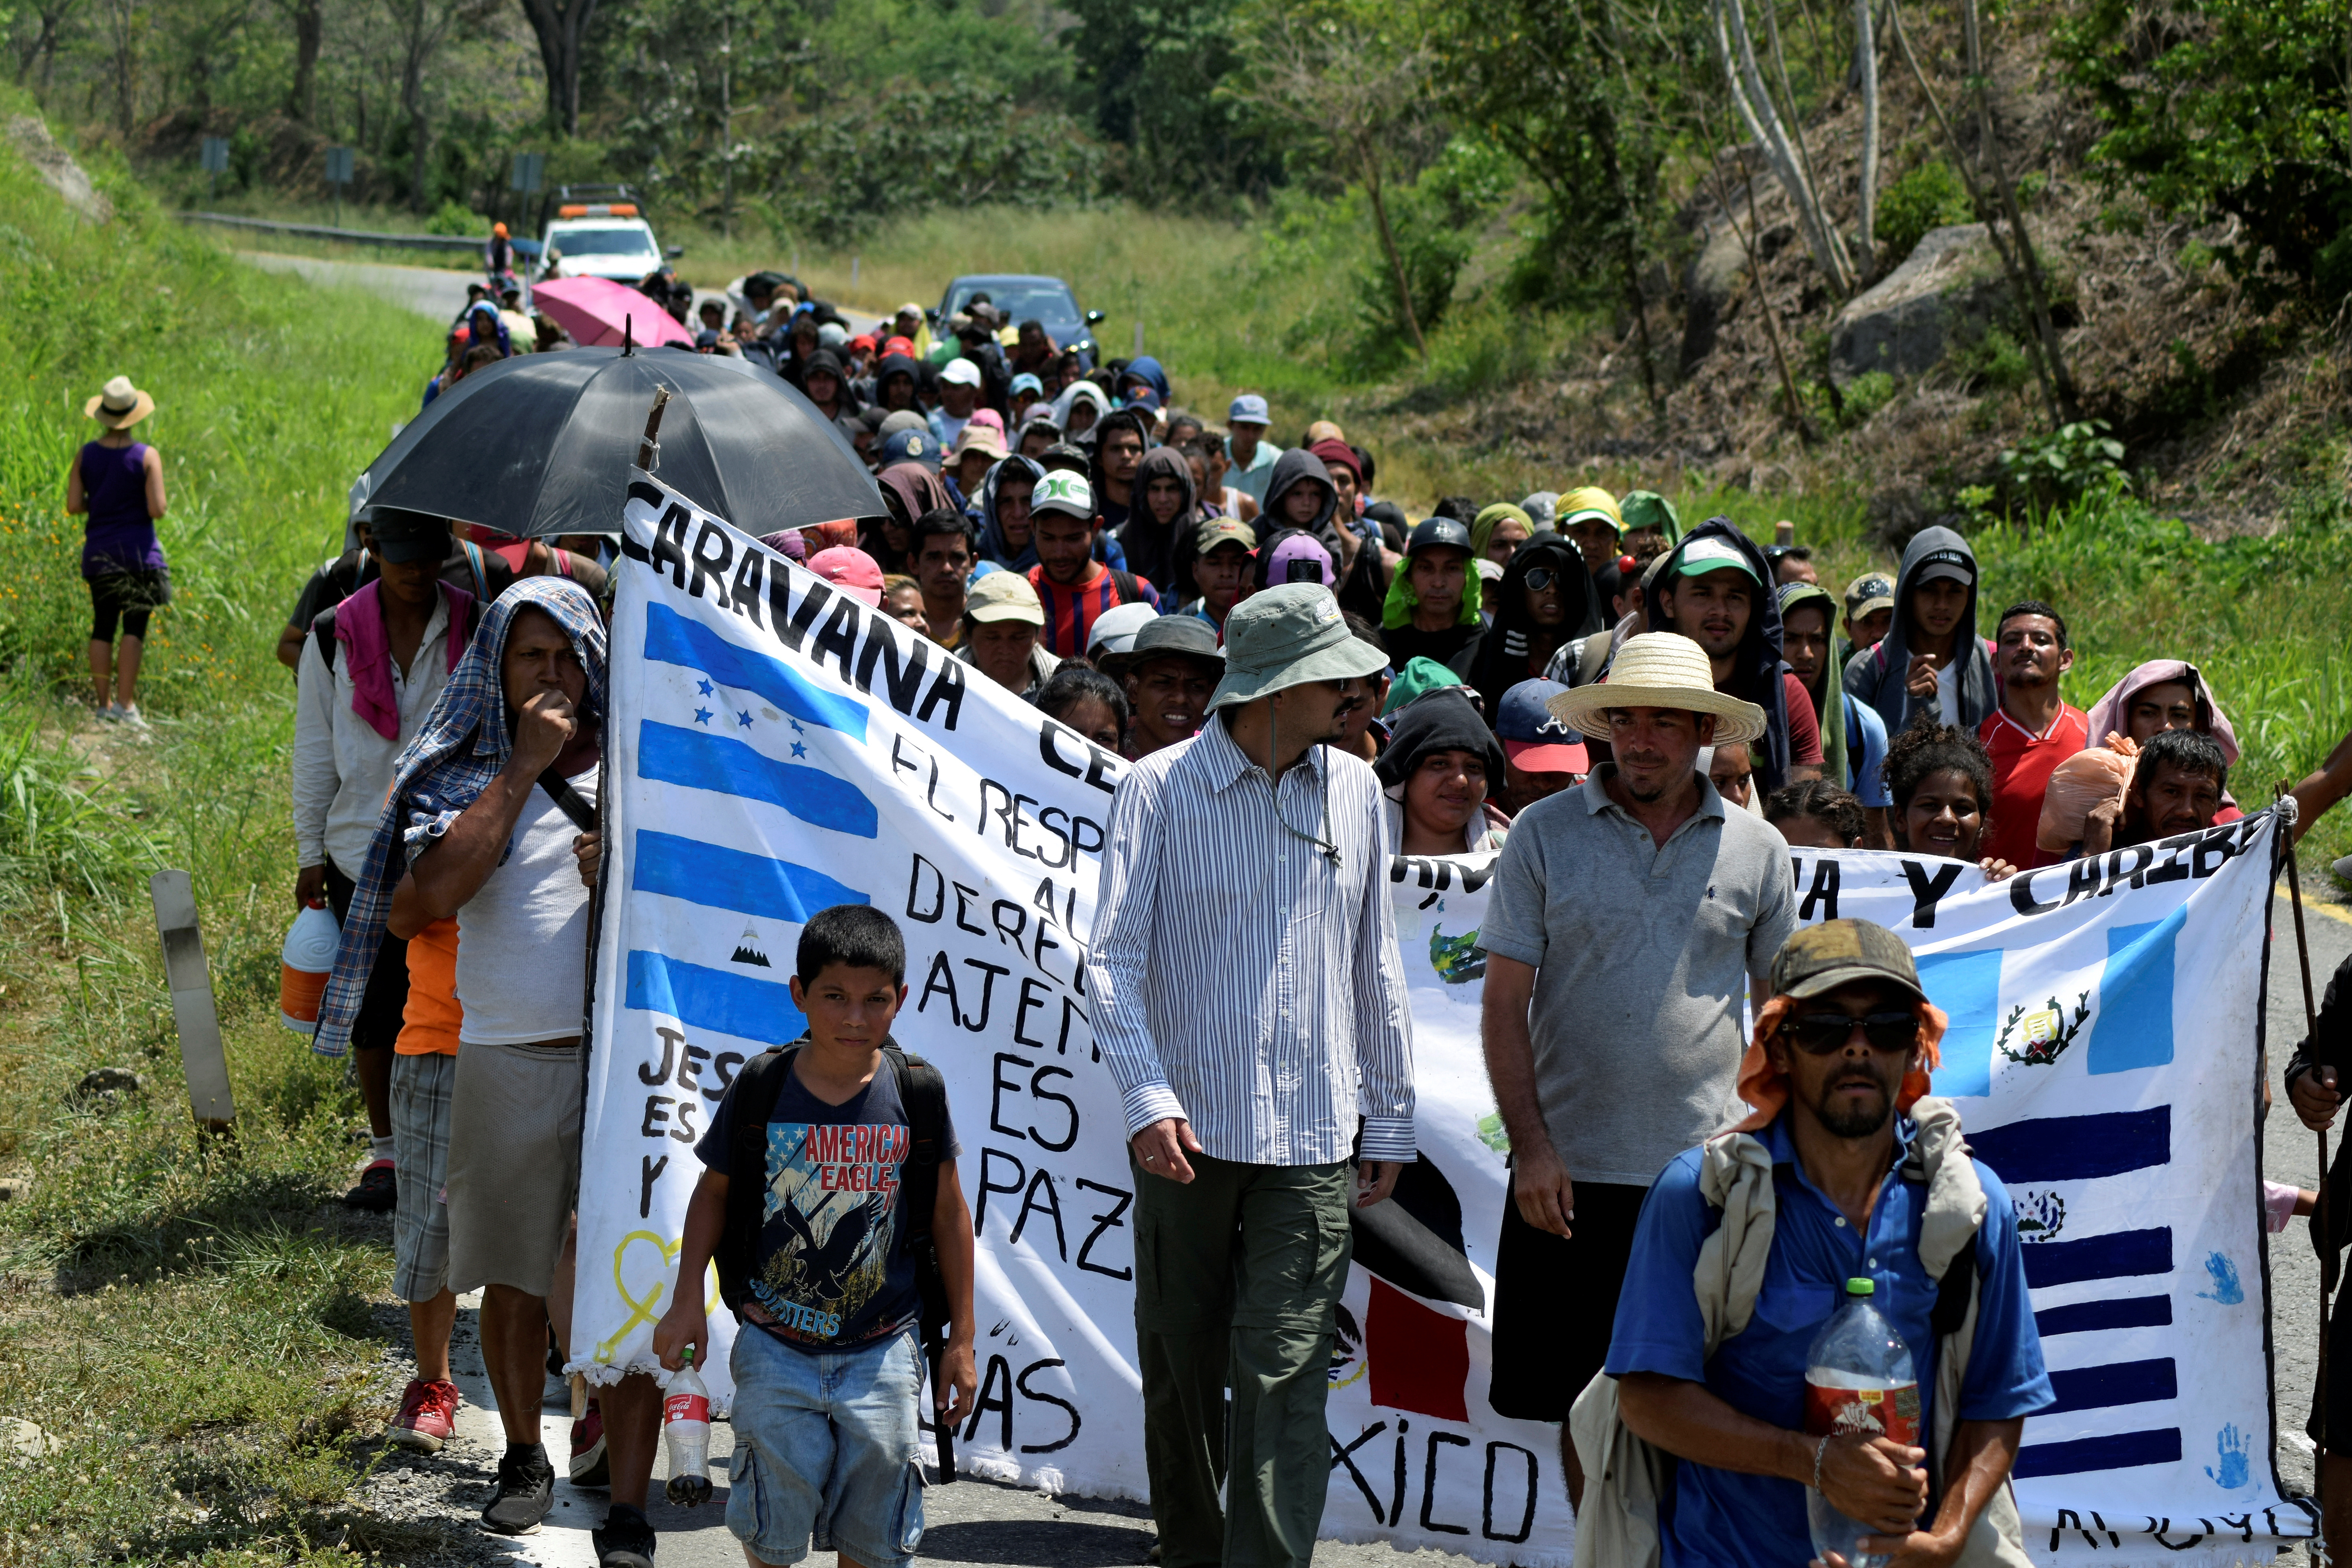 Migrants from Central America and Cuba walk on a highway during their journey towards the United States, in Escuintla